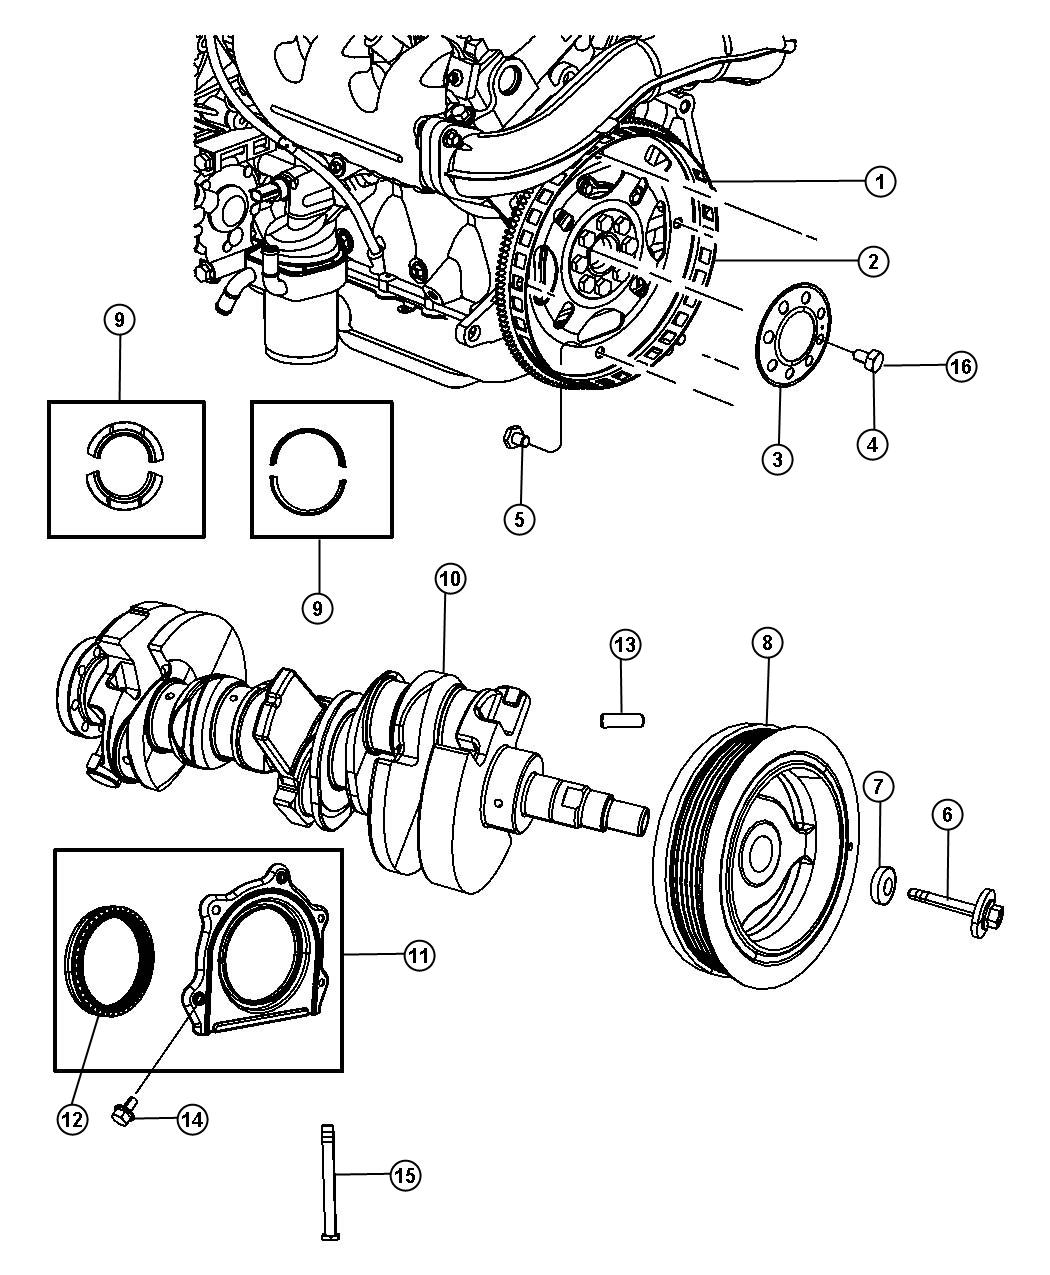 ShowAssembly together with RepairGuideContent furthermore ShowAssembly besides  on jeep 3 8l engine